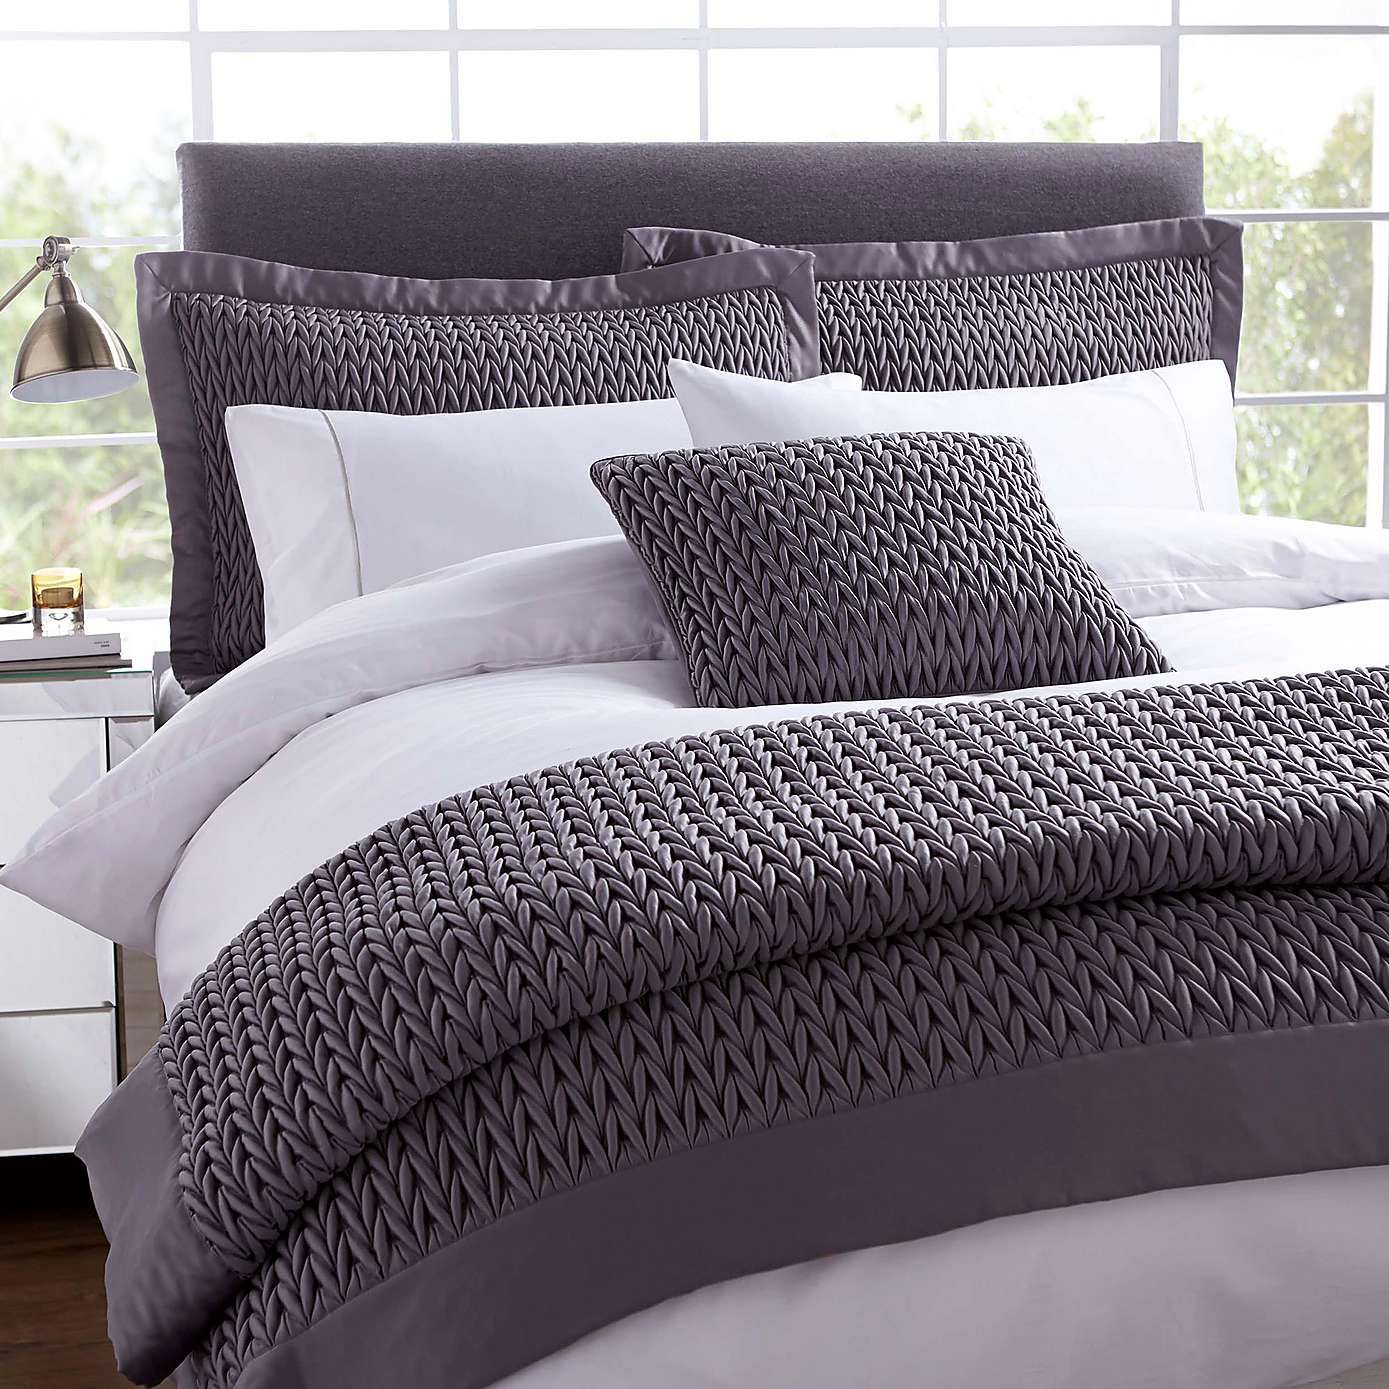 Charcoal Grey Bedding Hotel Charcoal Piccadilly Square Cushion Dunelm New